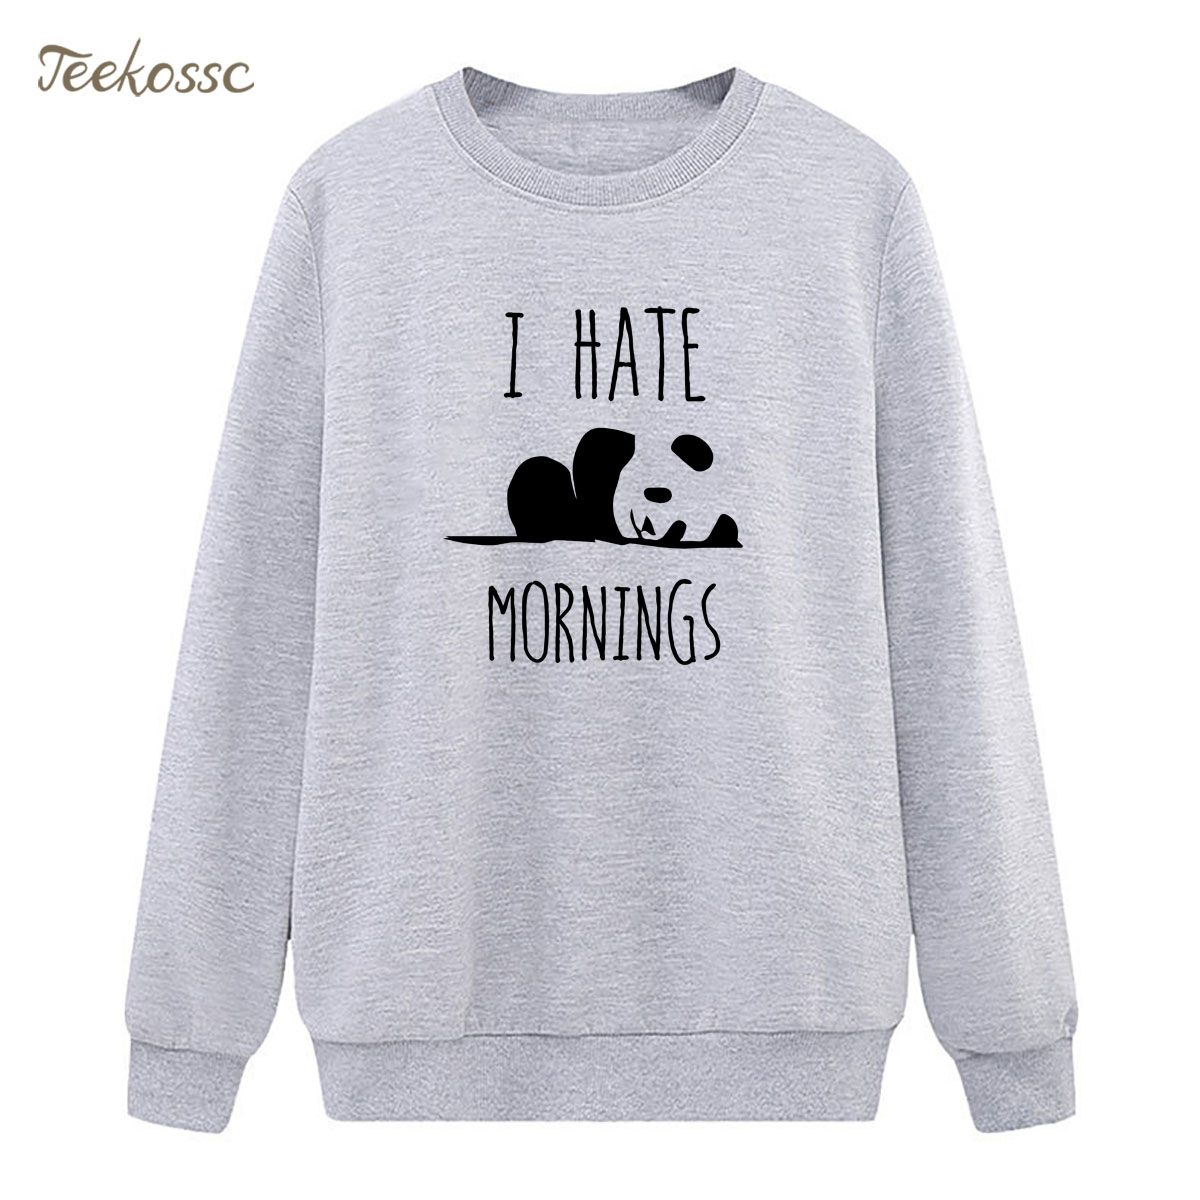 HATE MORNINGS Panda Sweatshirt Cute Hoodie Winter Autumn Women Lasdies Pullover Loose Fleece Hipster Streeetwear Brand Clothing